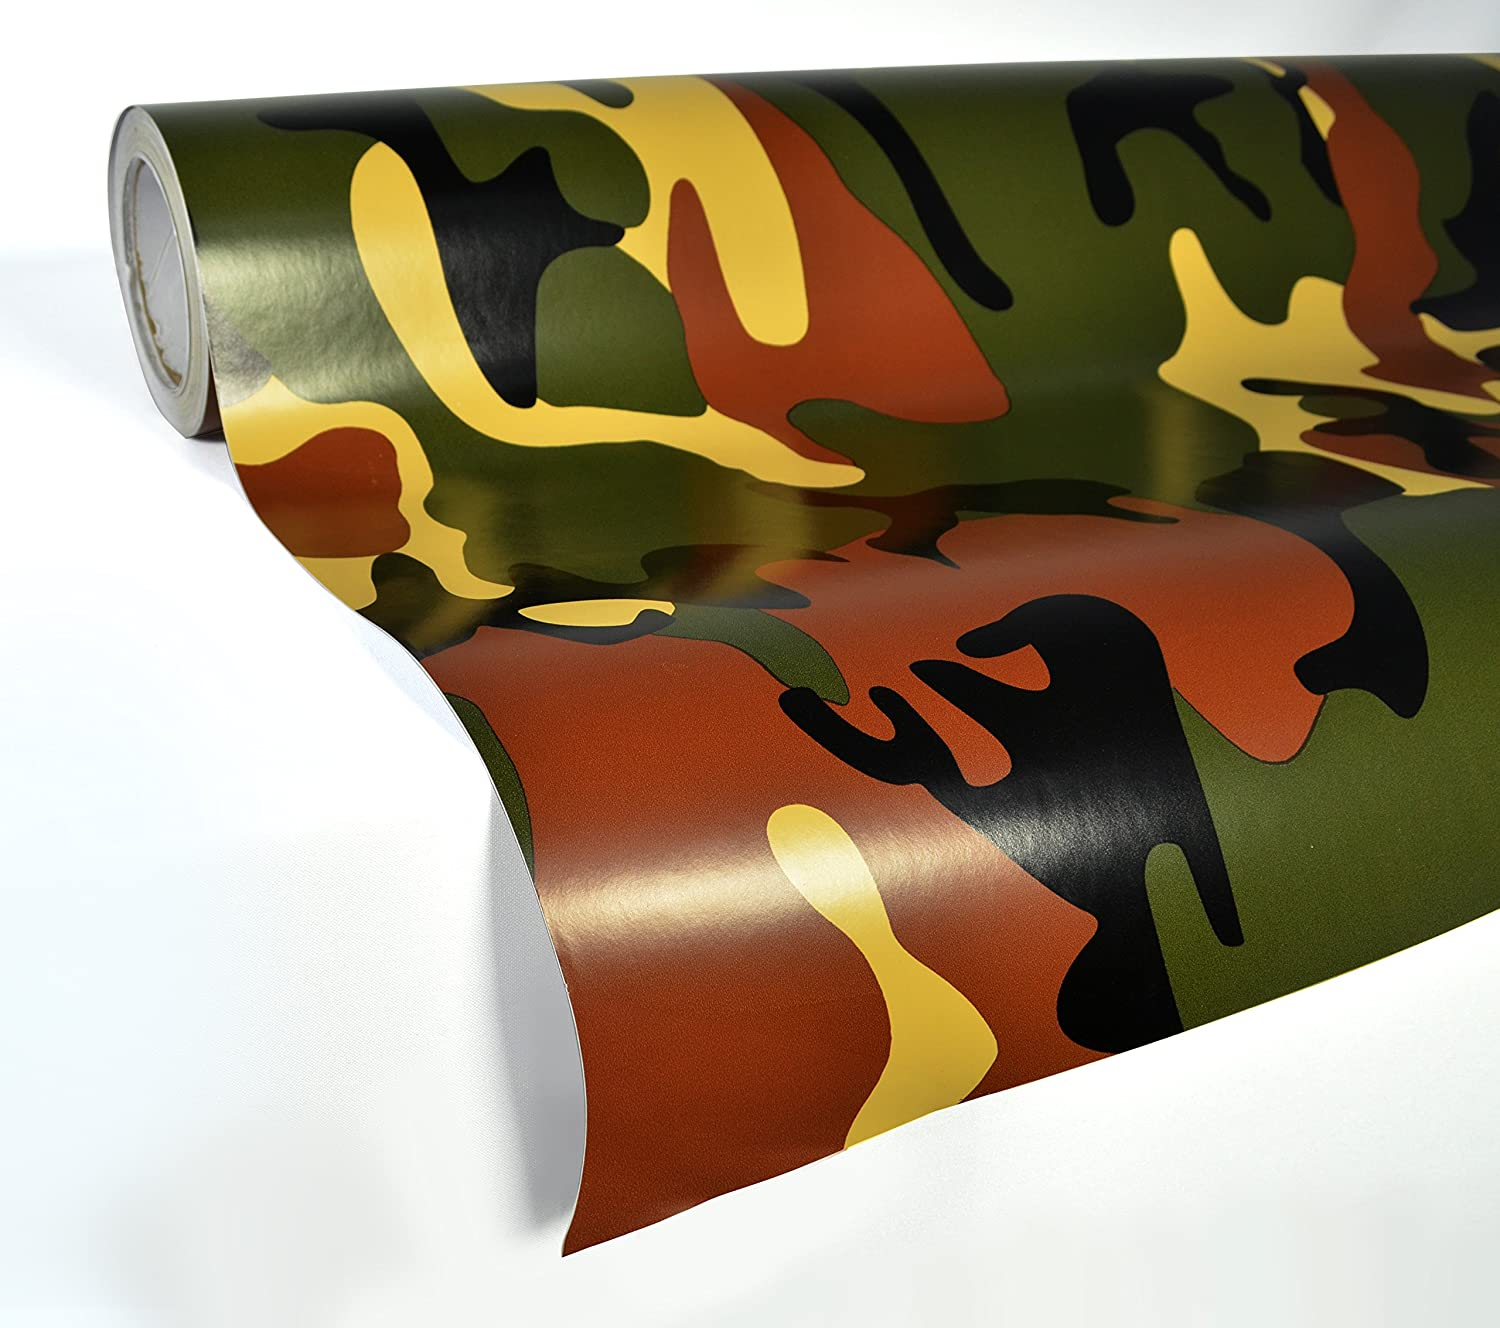 1ft x 5ft VViViD Snow Camouflage Vinyl Car Wrap Adhesive Decal DIY Air Release Roll